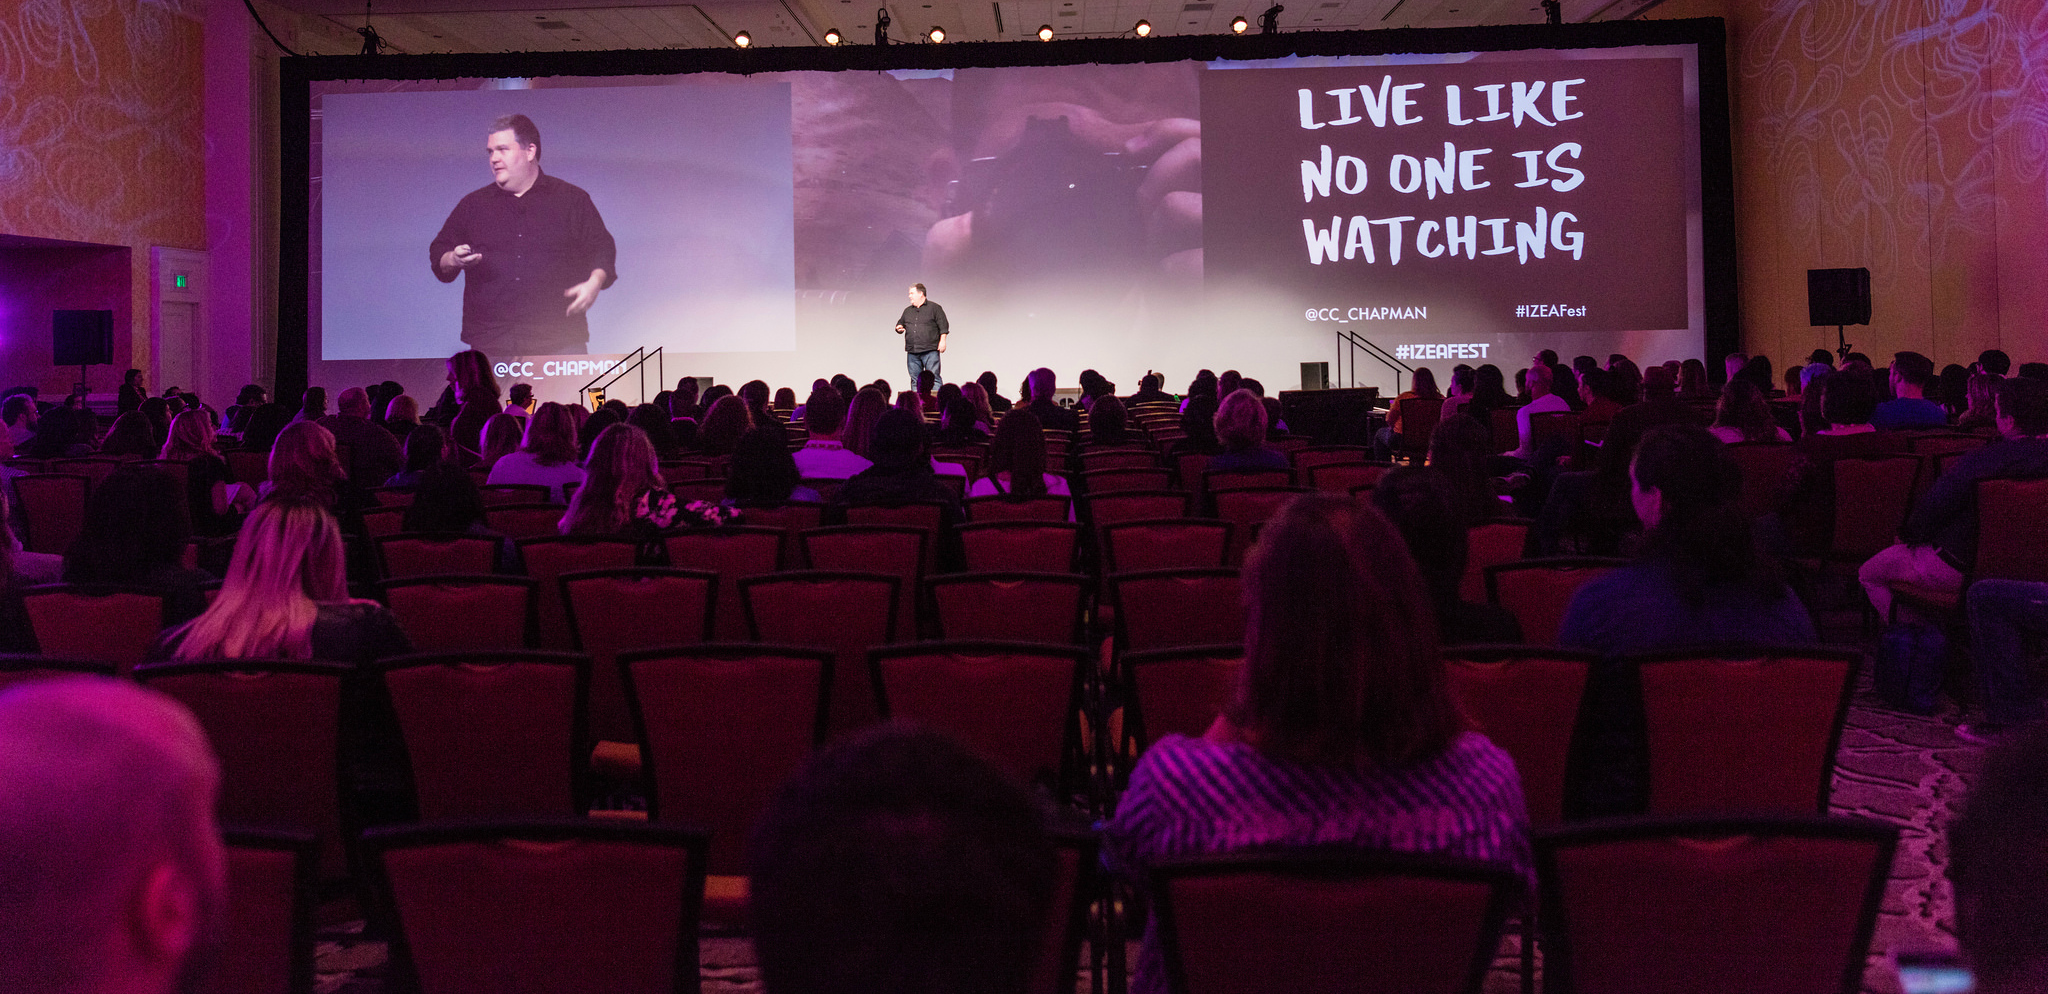 IZEAFest Session Video Recap: Live Like No One Is Watching by C.C. Chapman